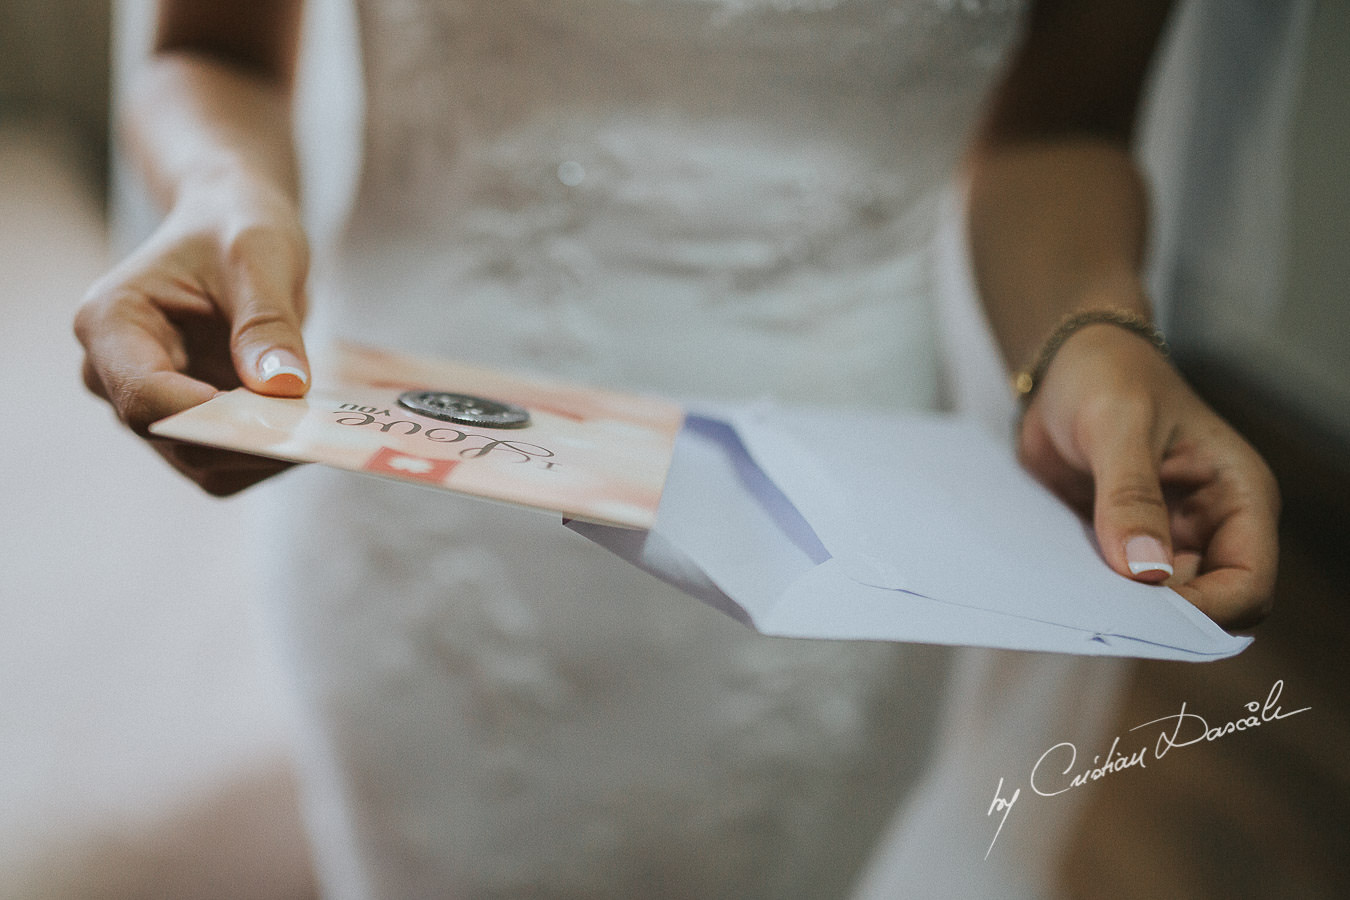 The bride Christina, opening a gift form her future husband to be, moments captured during a wedding at St Raphael Resort in Limassol, Cyprus.